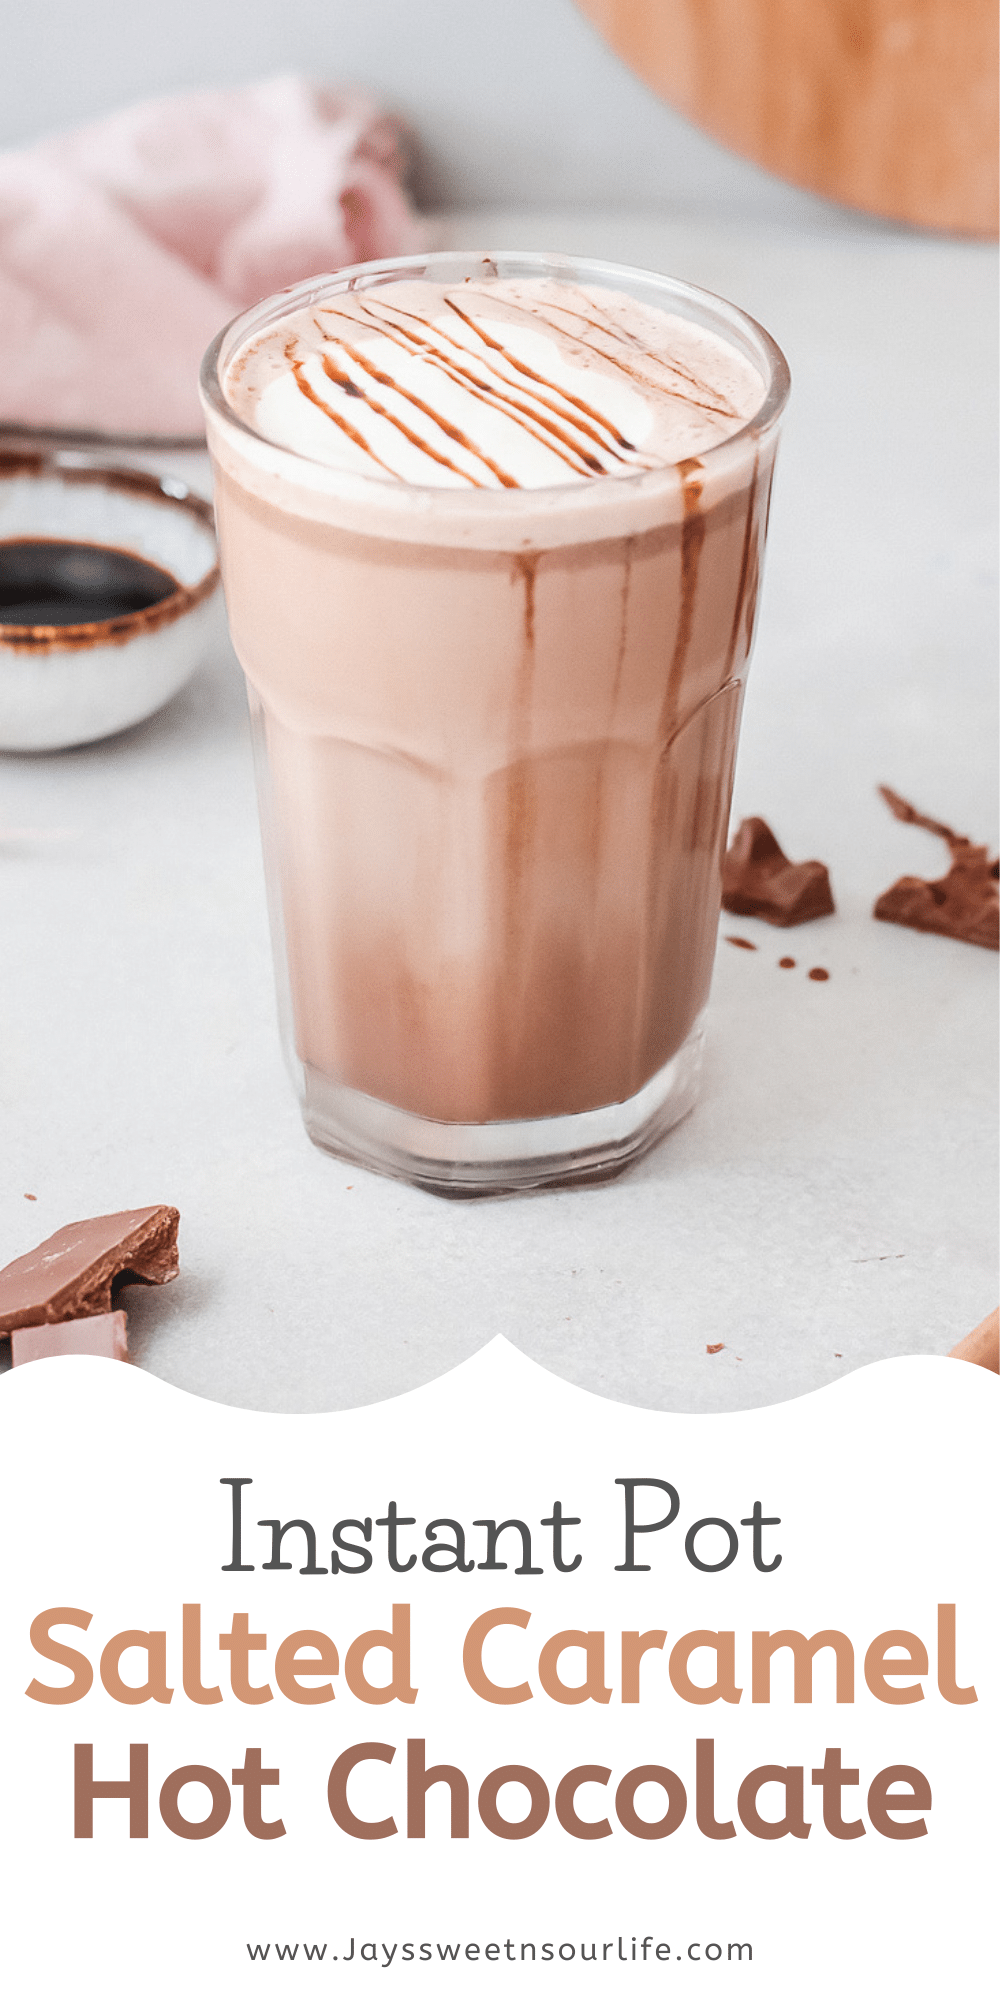 Instant Pot Salted Caramel Hot Chocolate Recipe. Silky smooth, creamy and decadent, this Instant Pot Salted Caramel Hot Chocolate is an instant family favorite. Made in either the Instant Pot or Slow Cooker this festive holiday drink is perfect for any occasion.